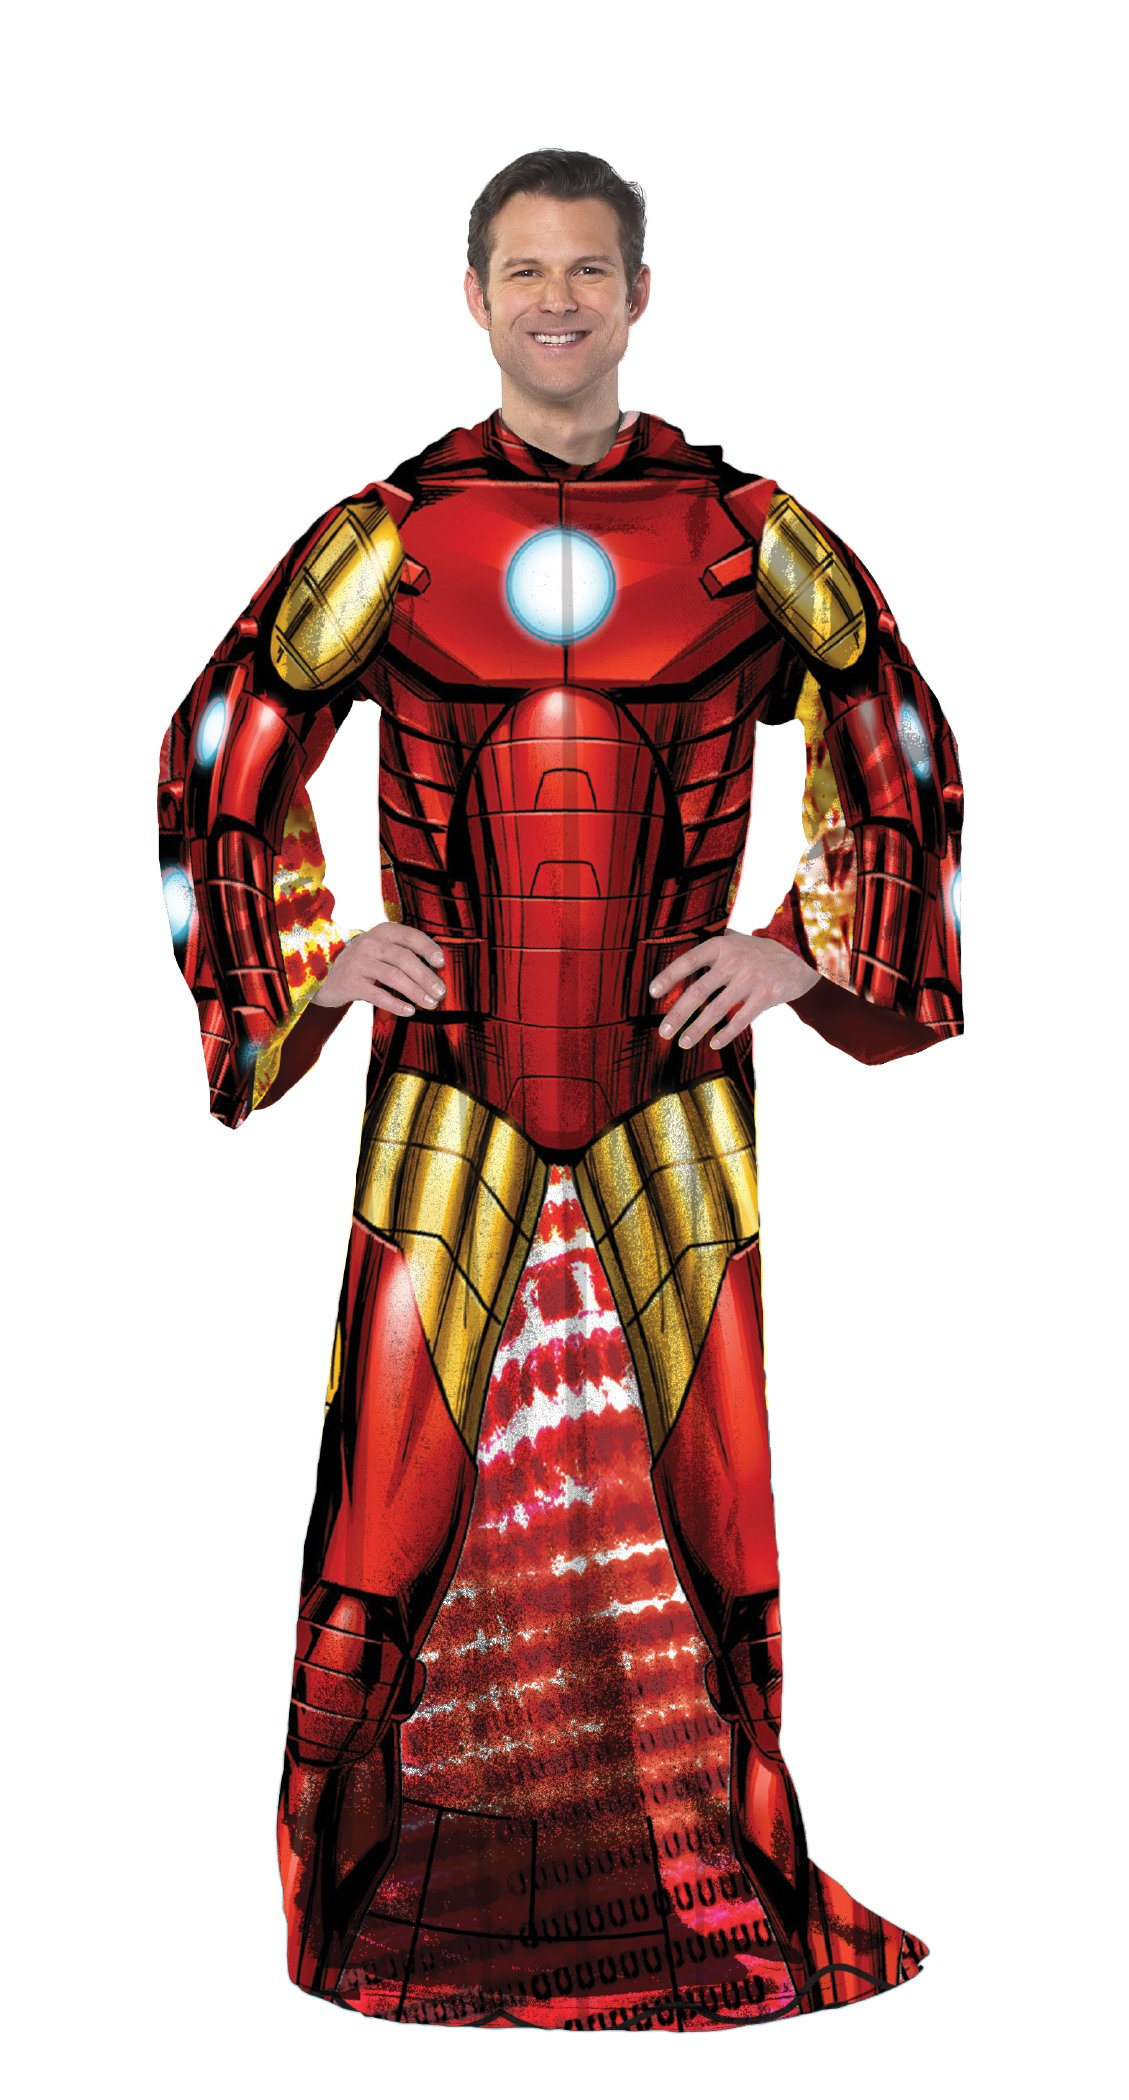 Marvel's Iron Man, ''Being Iron Man'' Adult Comfy Throw Blanket, 48'' x 71'', Multi Color by Marvel